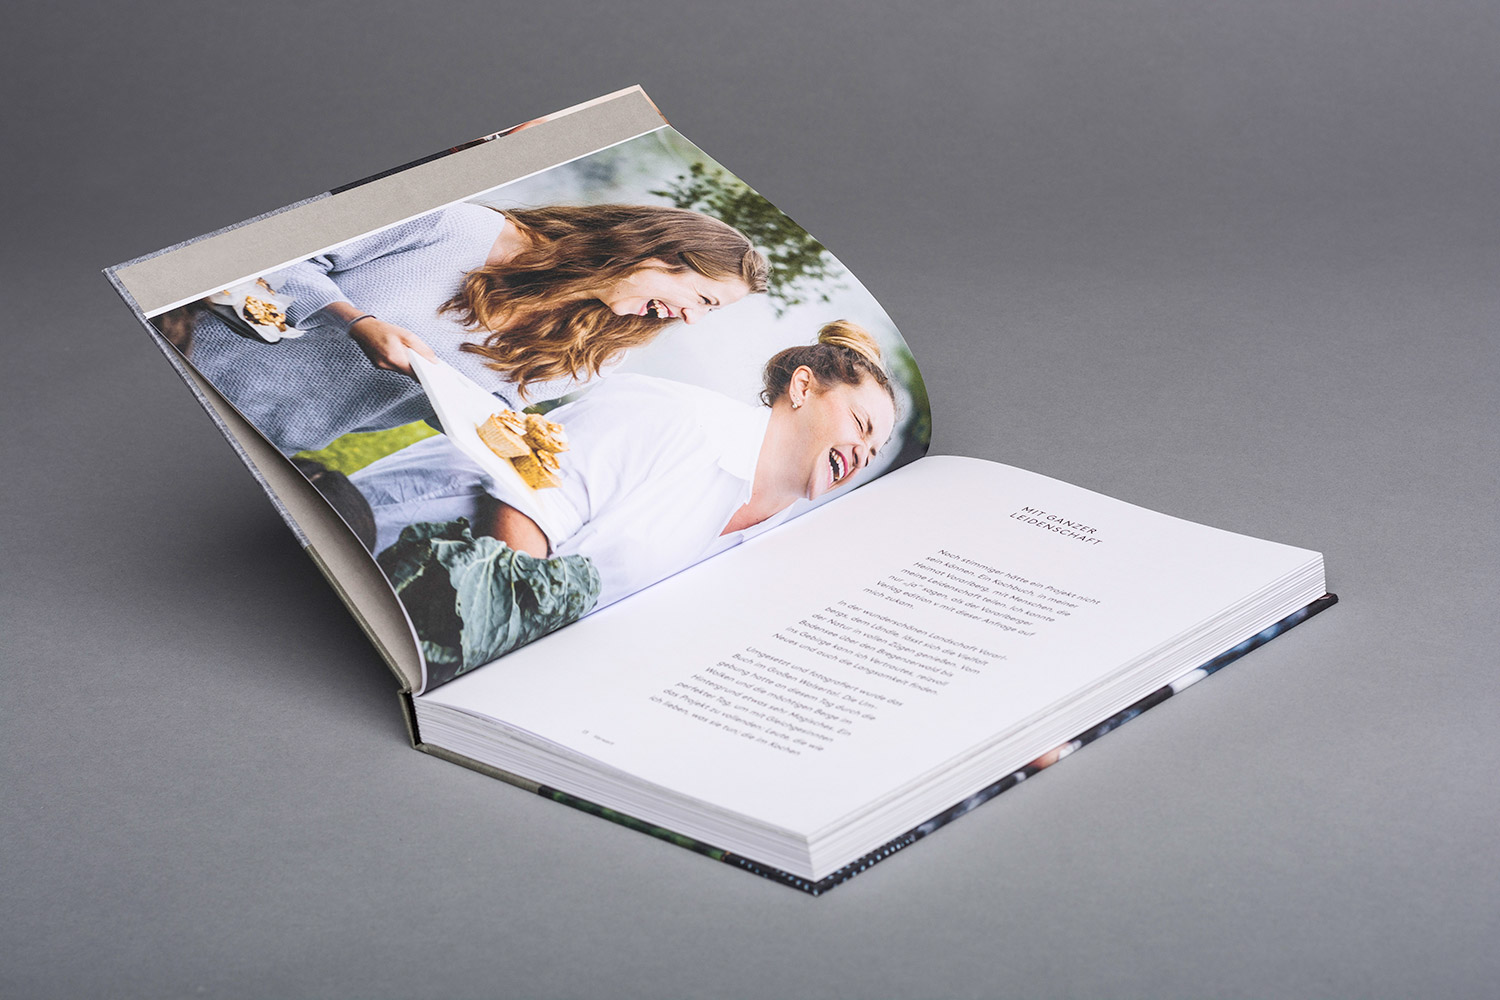 Nina Fischer – Mundart – Editorial Design